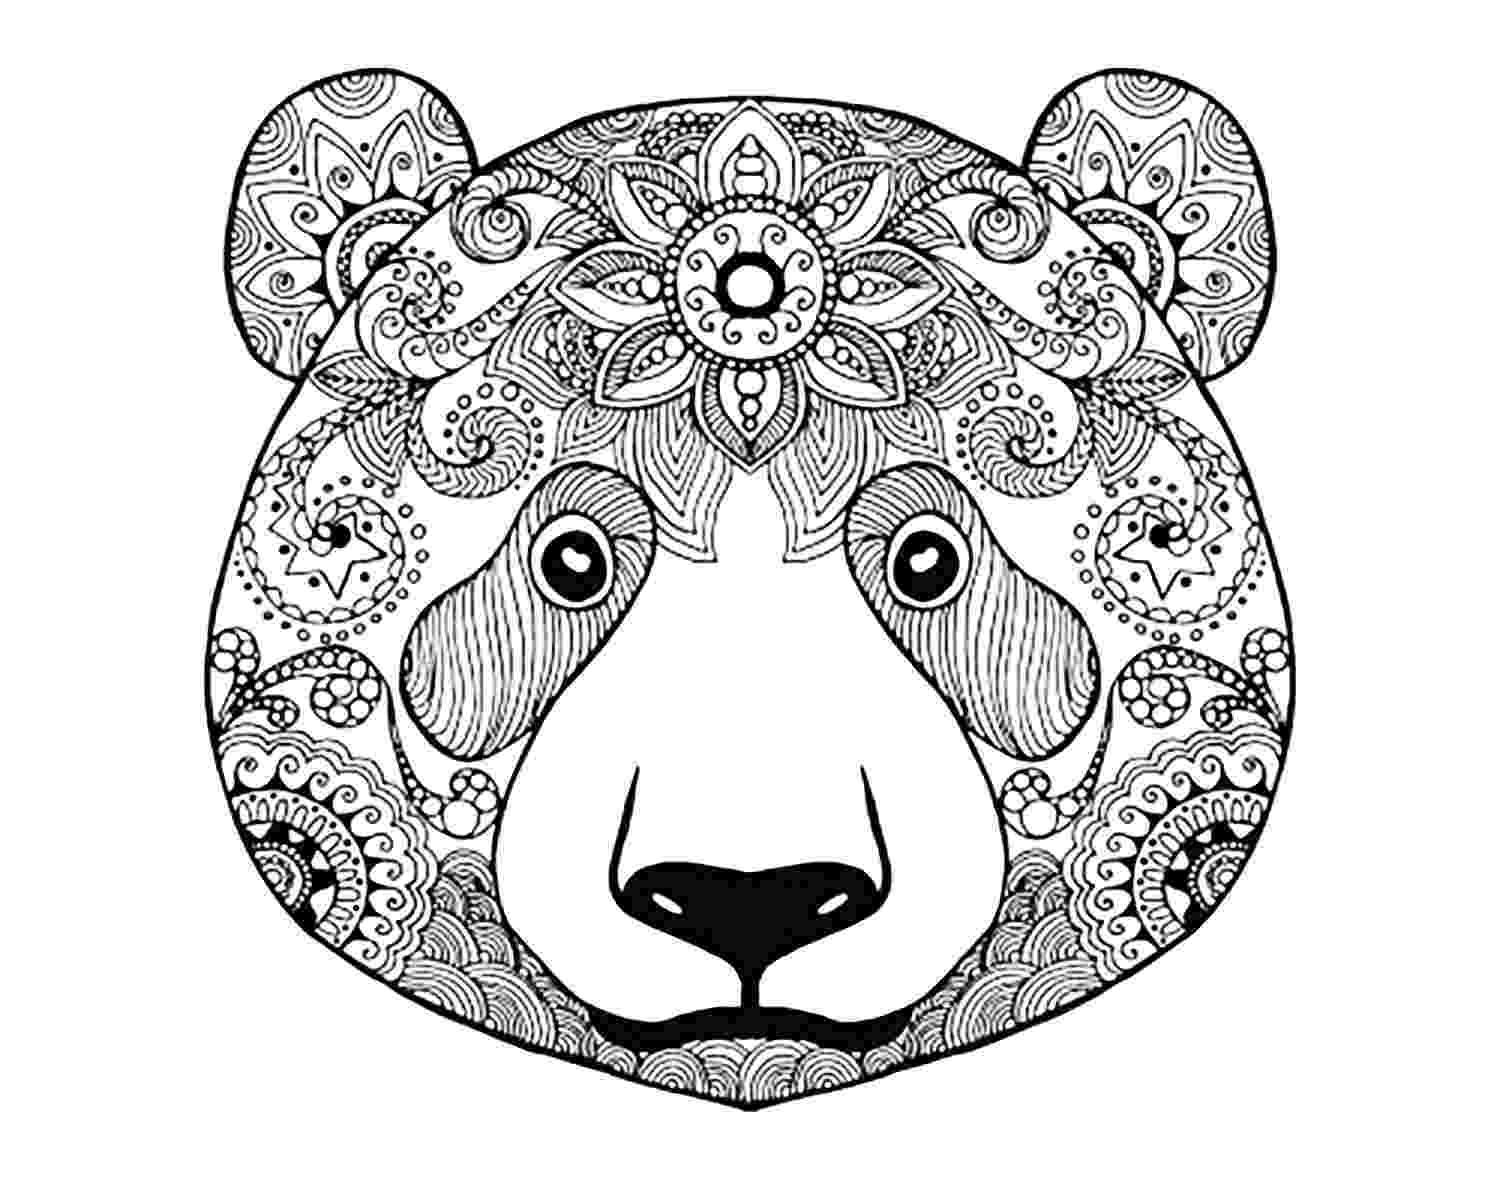 animal coloring pages to print adult coloring pages animals best coloring pages for kids animal print to coloring pages